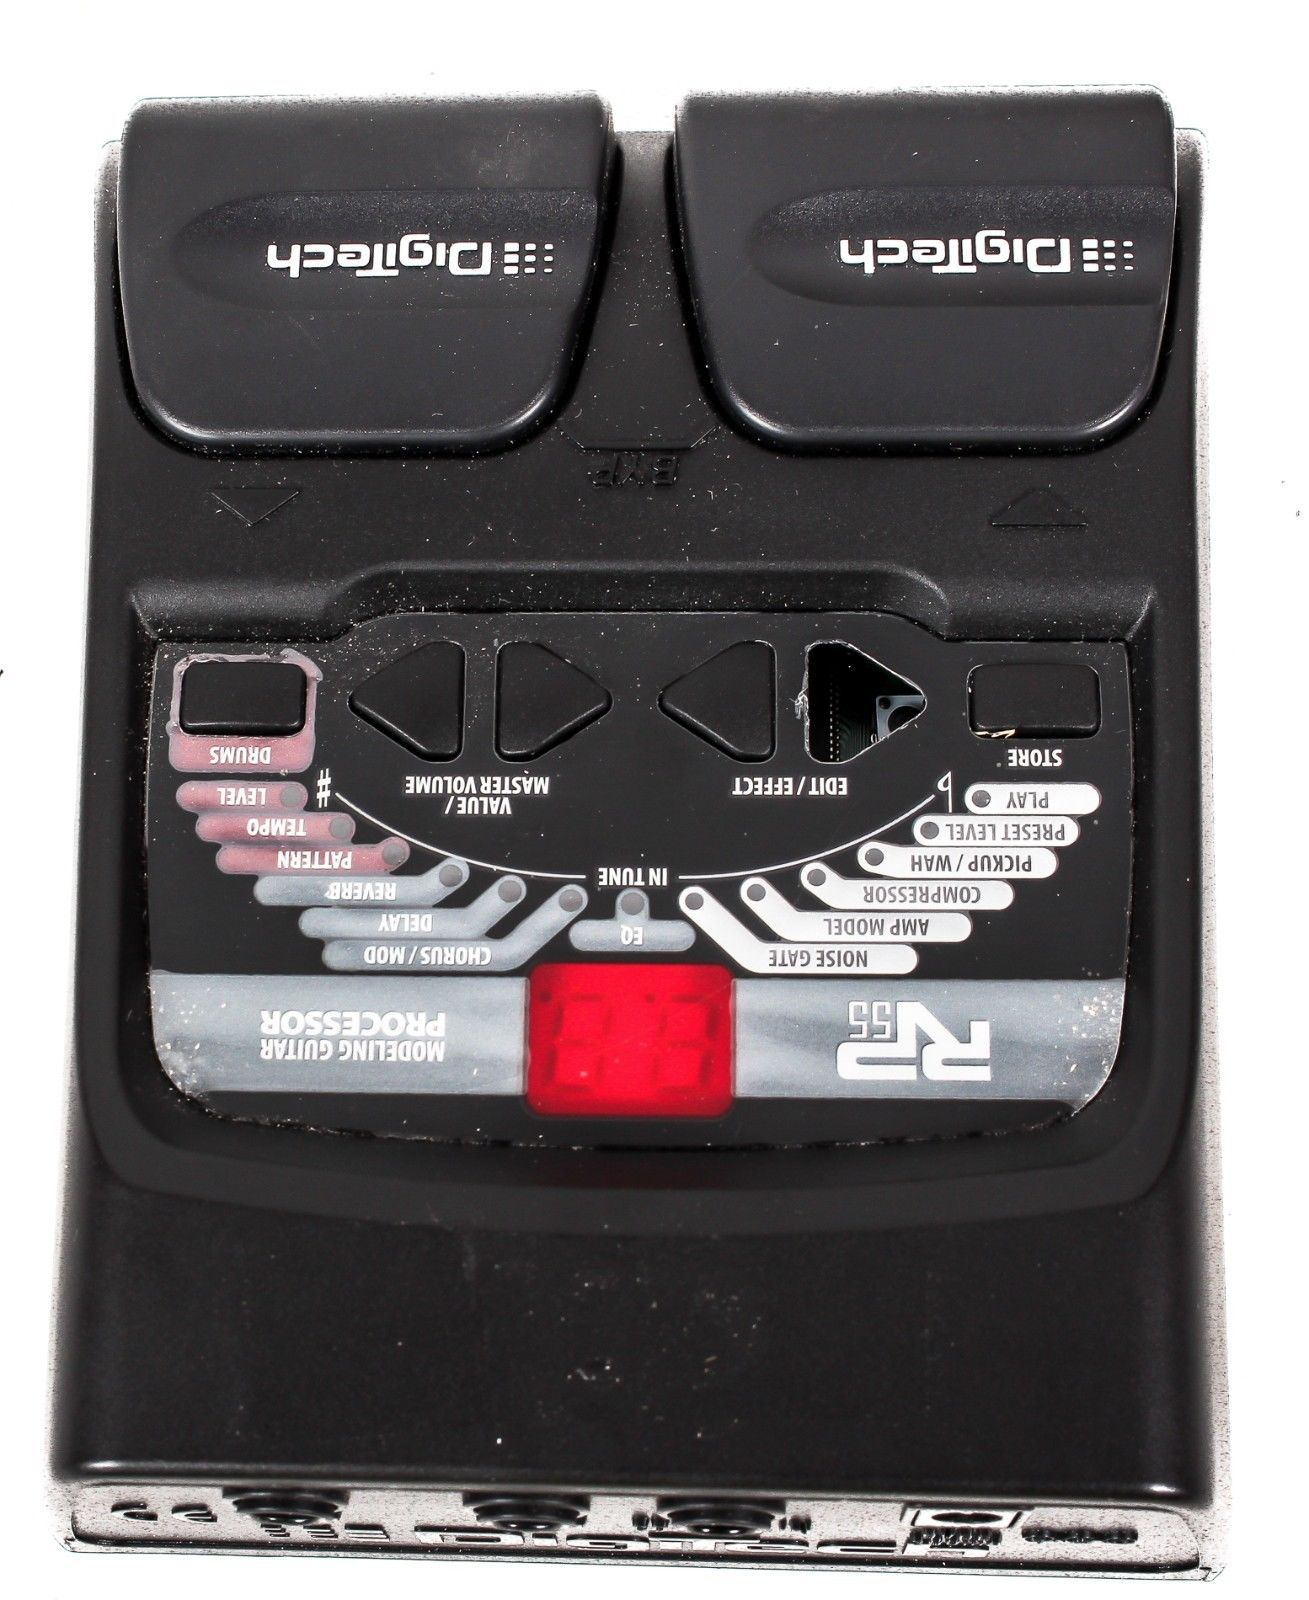 DigiTech RP55 Guitar Multi-Effects Pedal, ISSUE